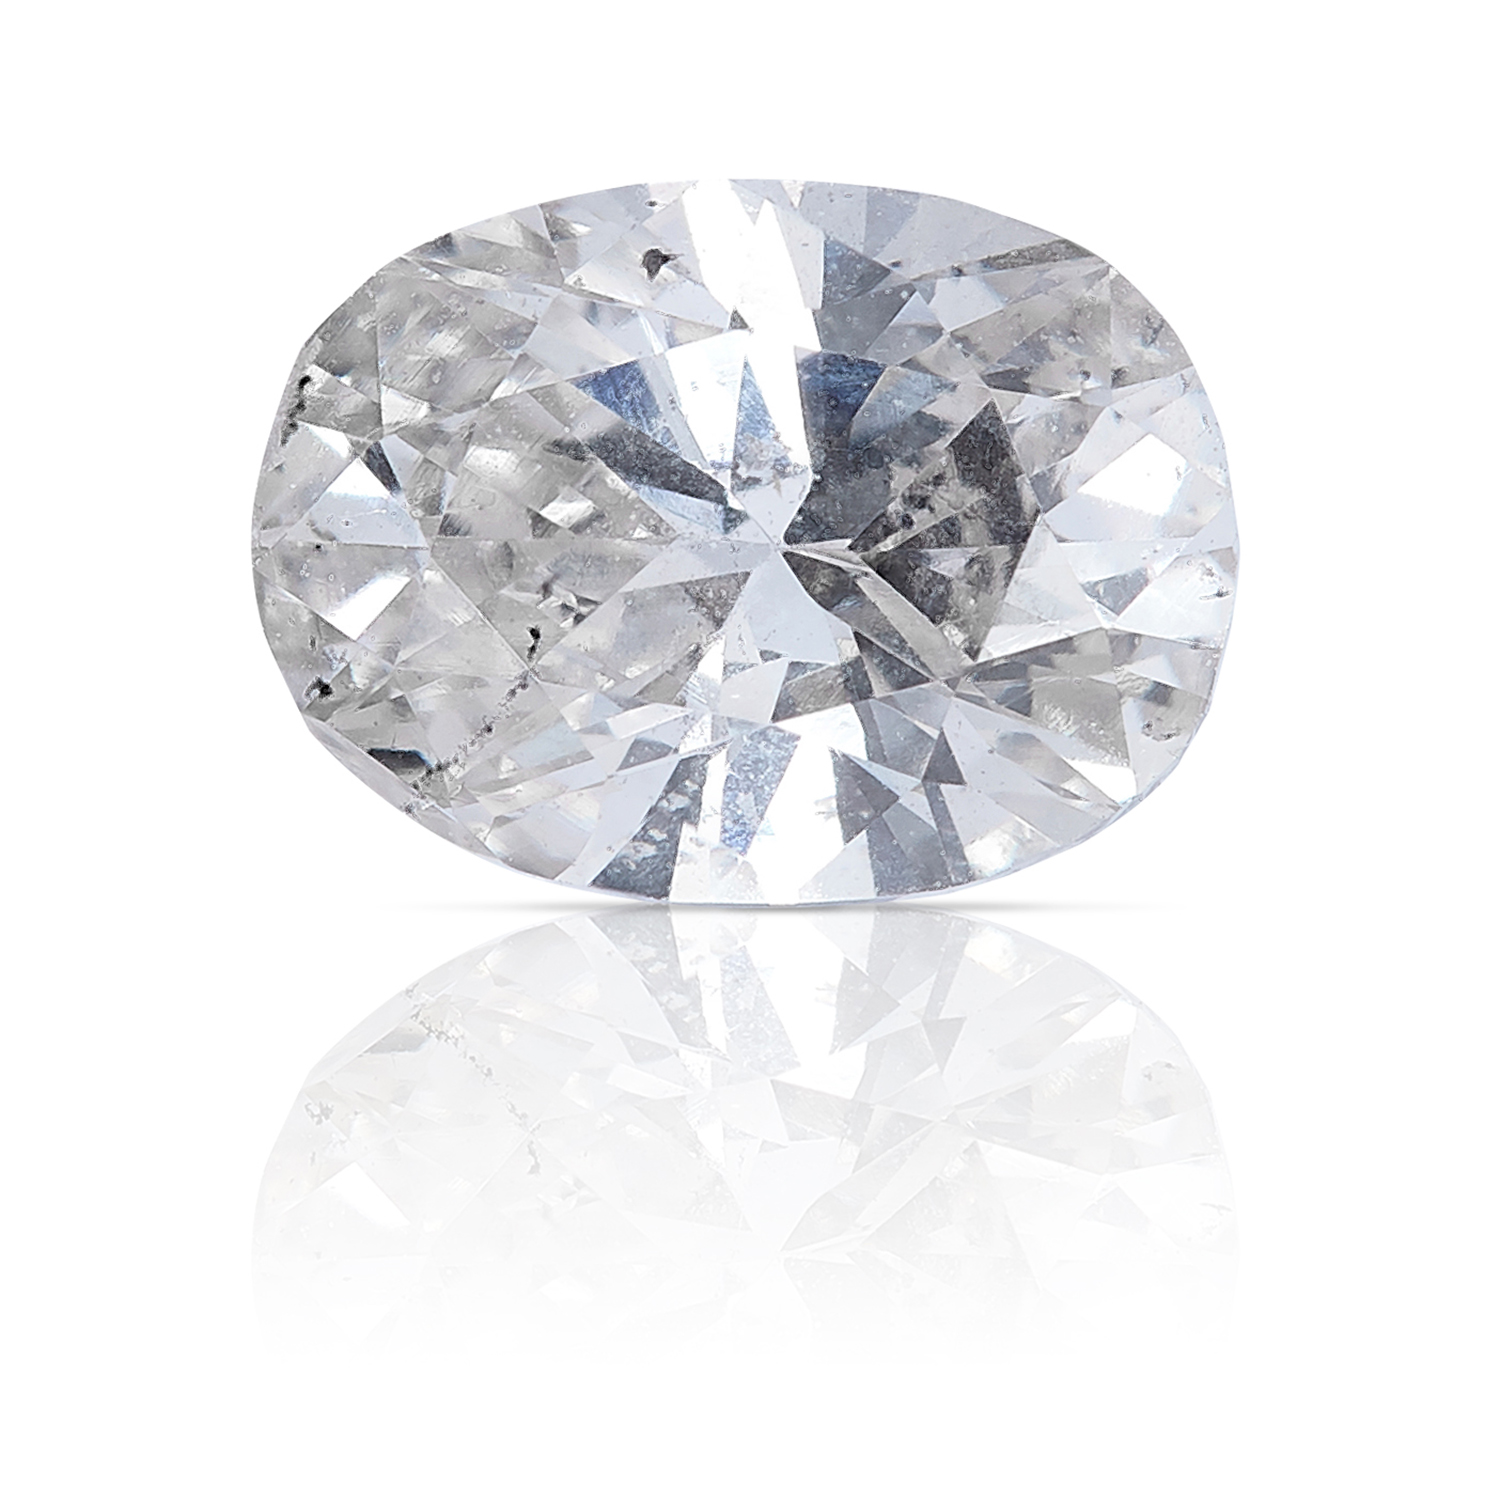 AN OVAL SHAPED BRILLIANT CUT DIAMOND, TOTALLING 0.68cts, UNMOUNTED.